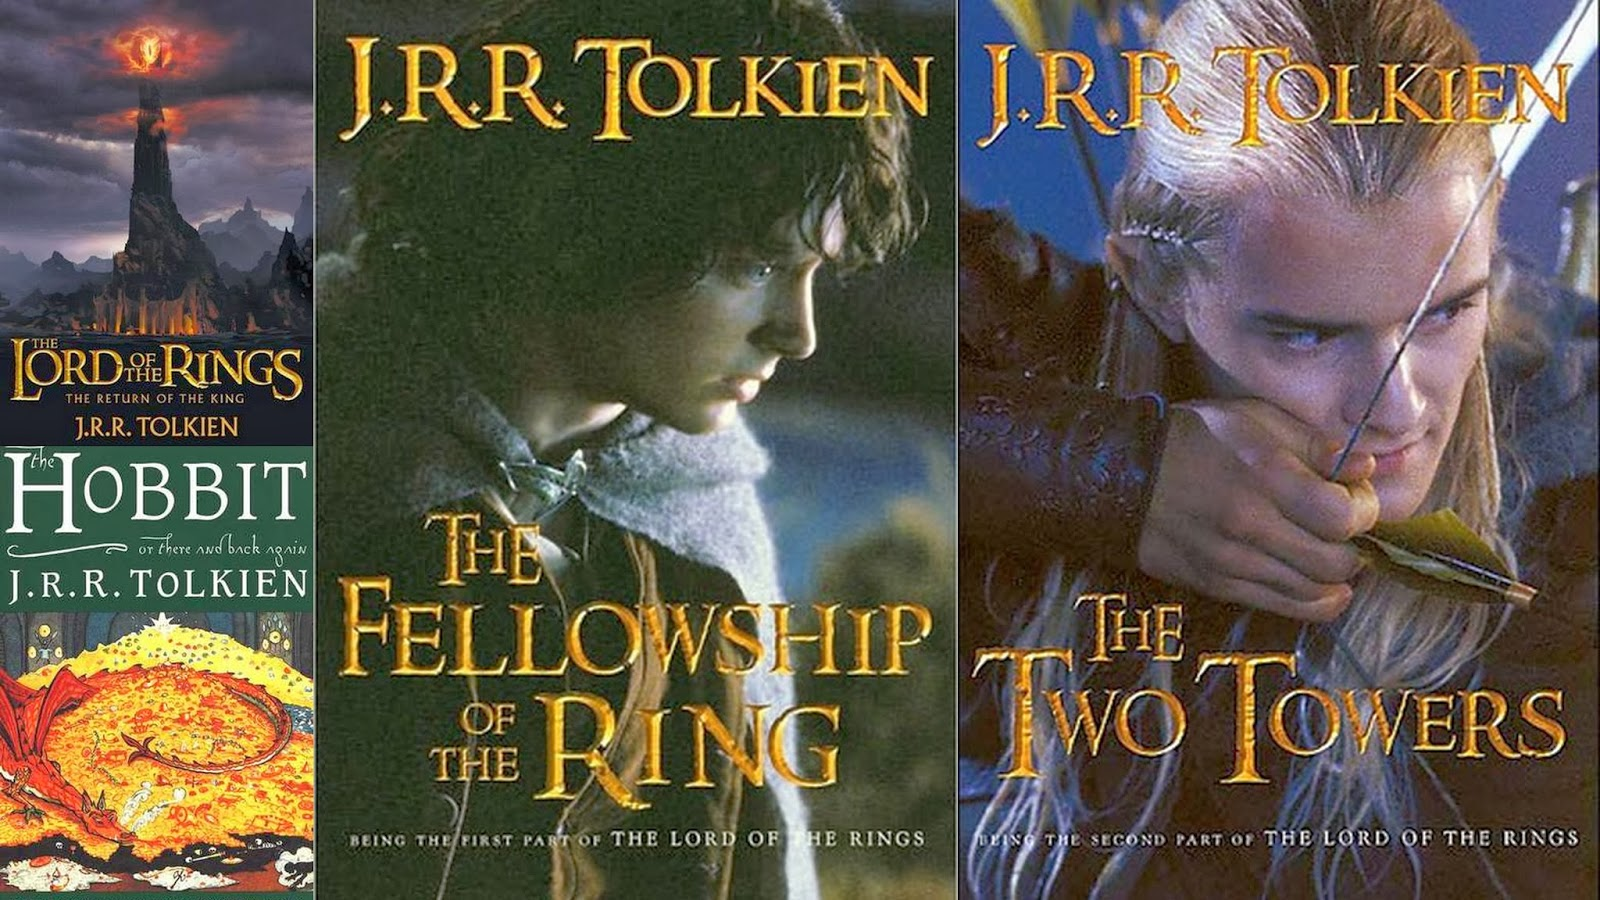 a brief overview of the story the lord of the rings Immediately download the the lord of the rings summary overview author biography tells the story of a quest led by frodo baggins to destroy the ring of.